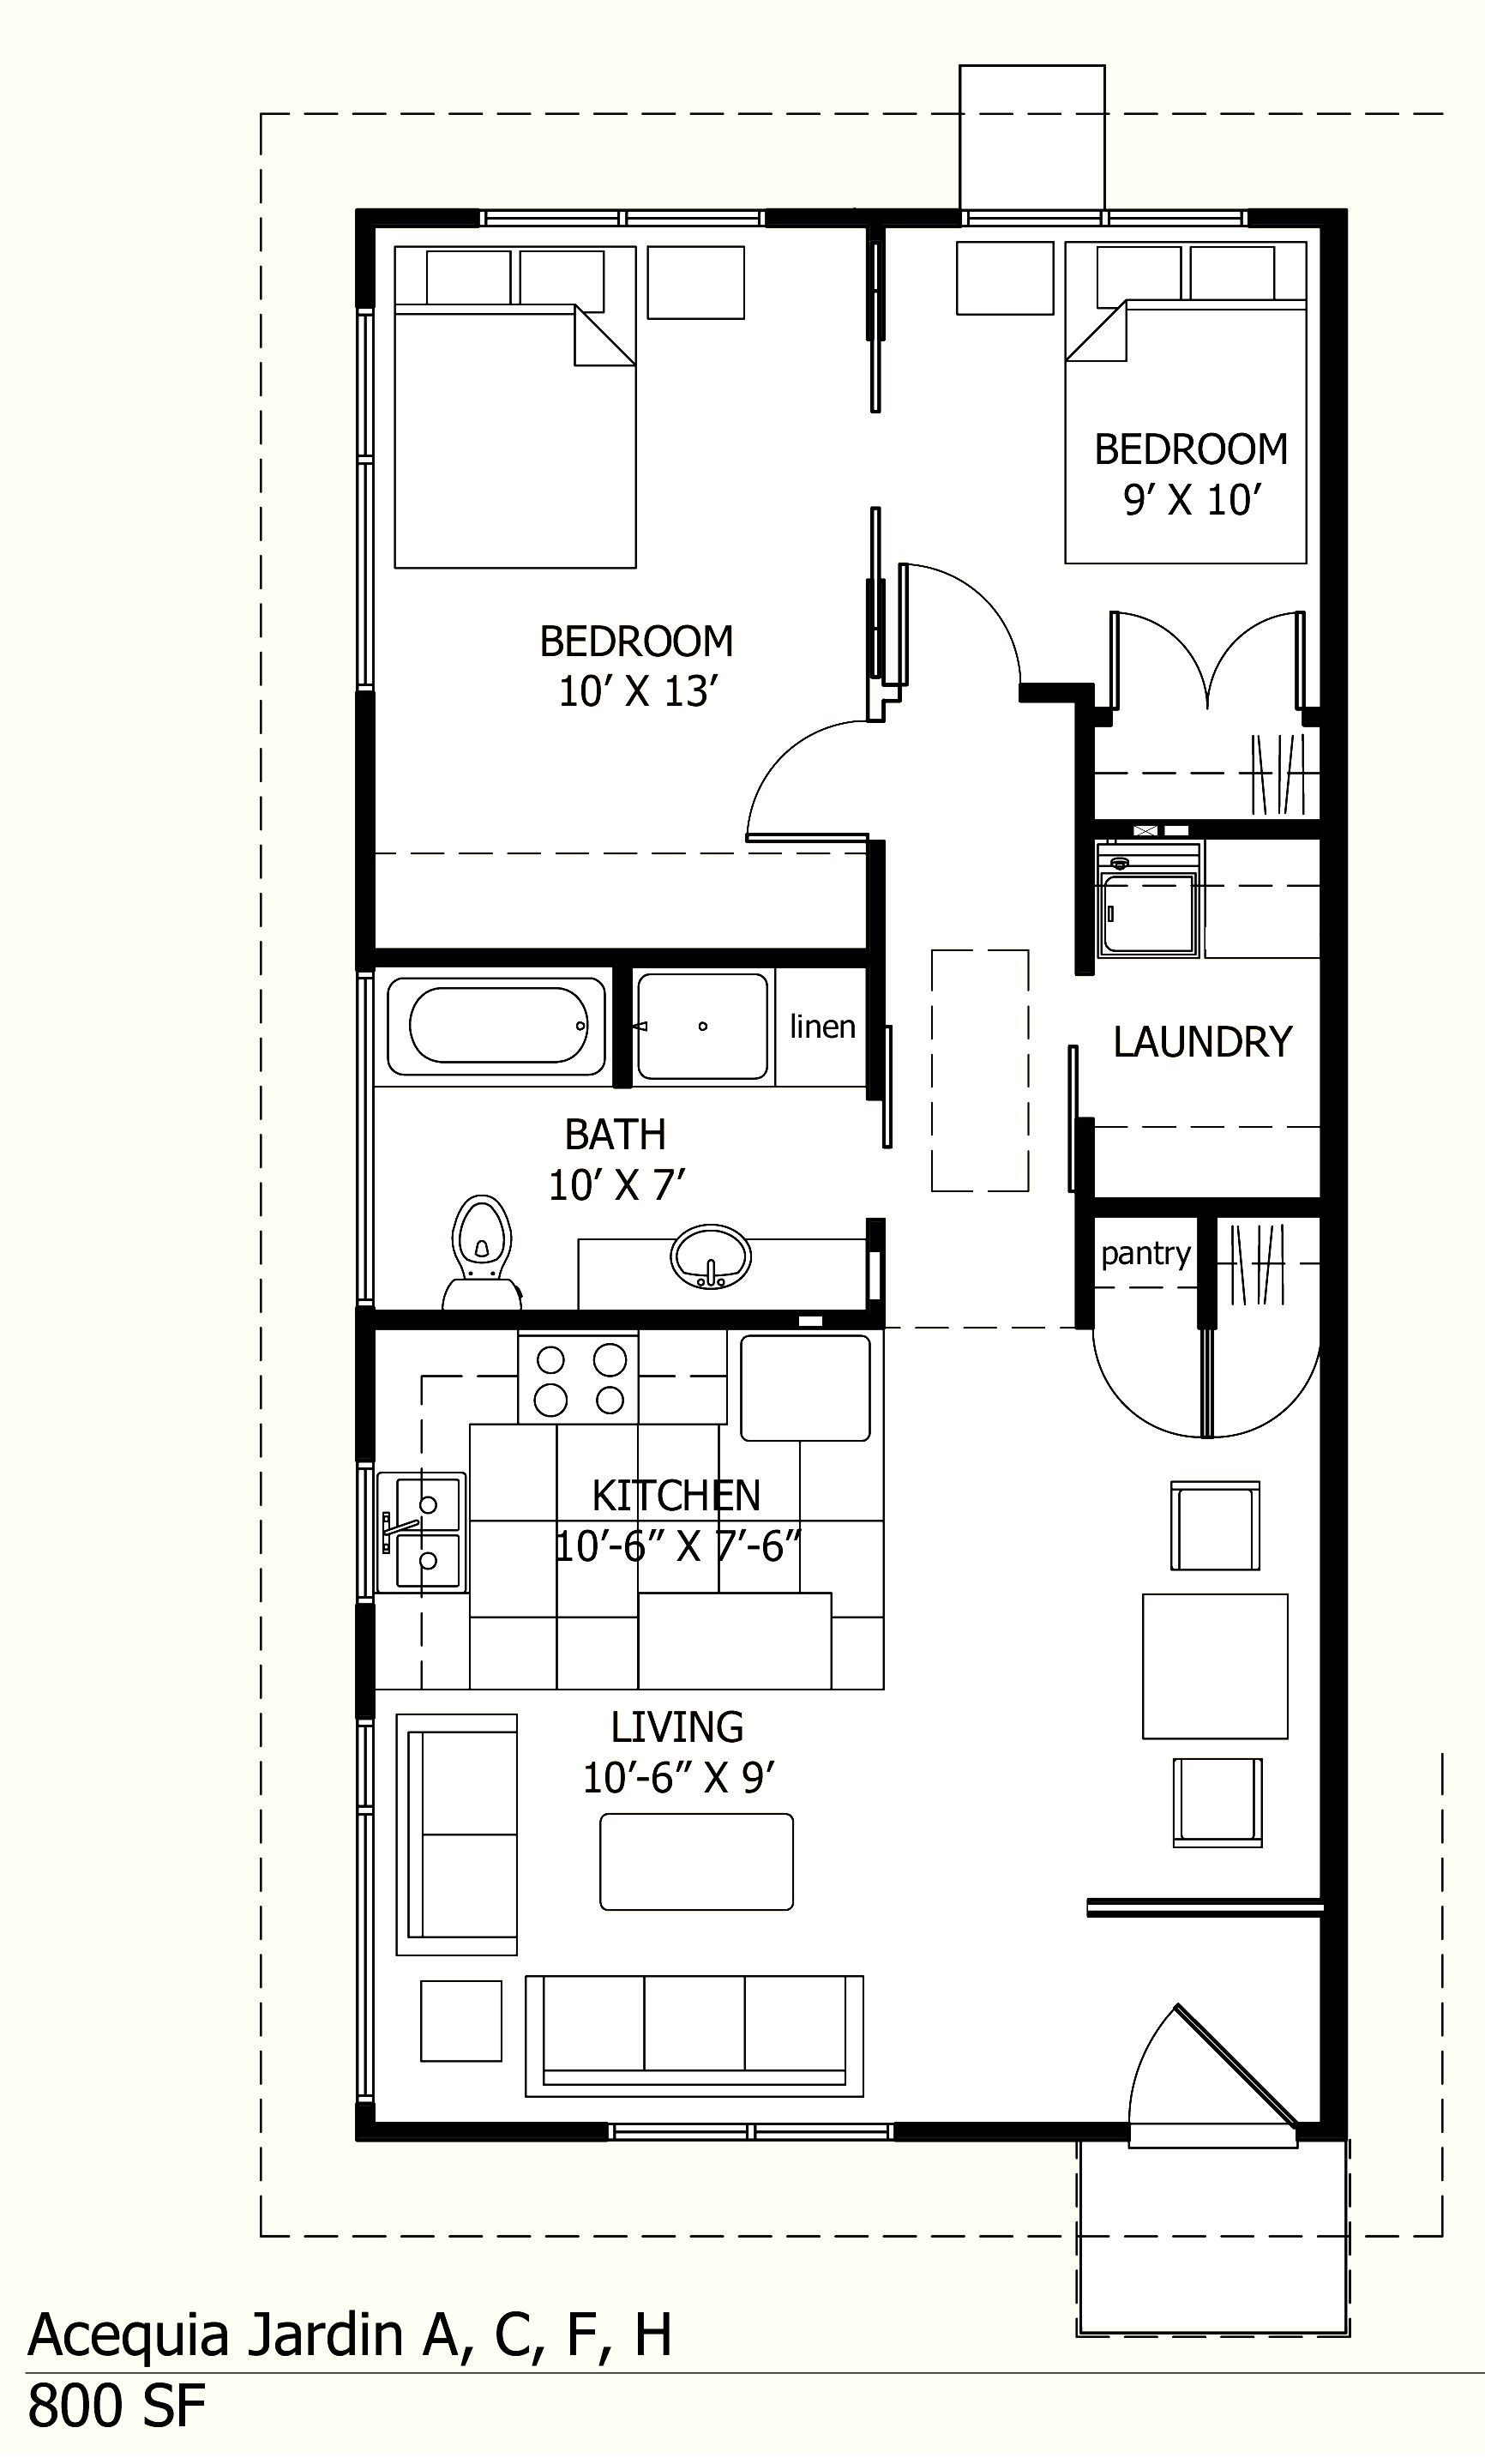 I like this one because there is a laundry room 800 sq ft floor